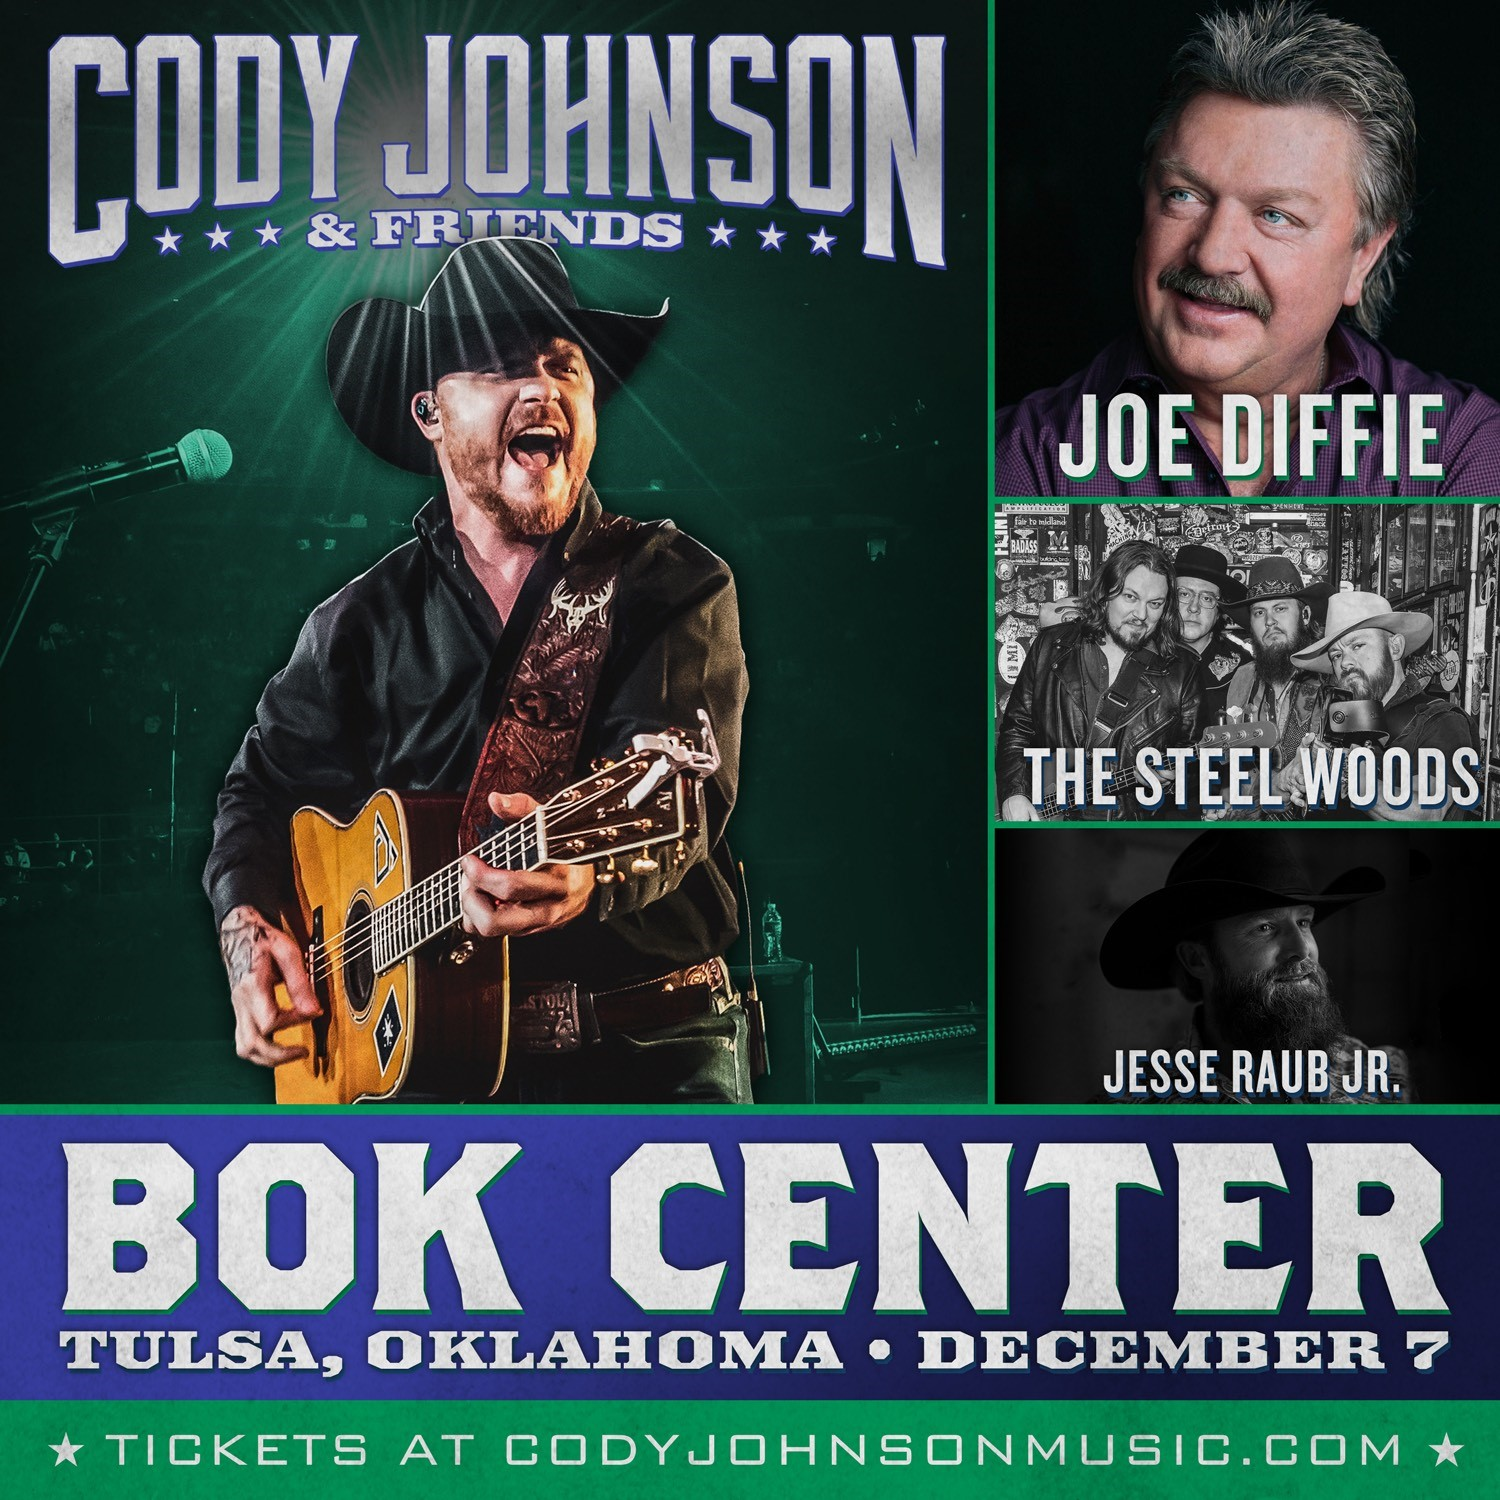 Tulsa, OK Fan Club Presale | July 24